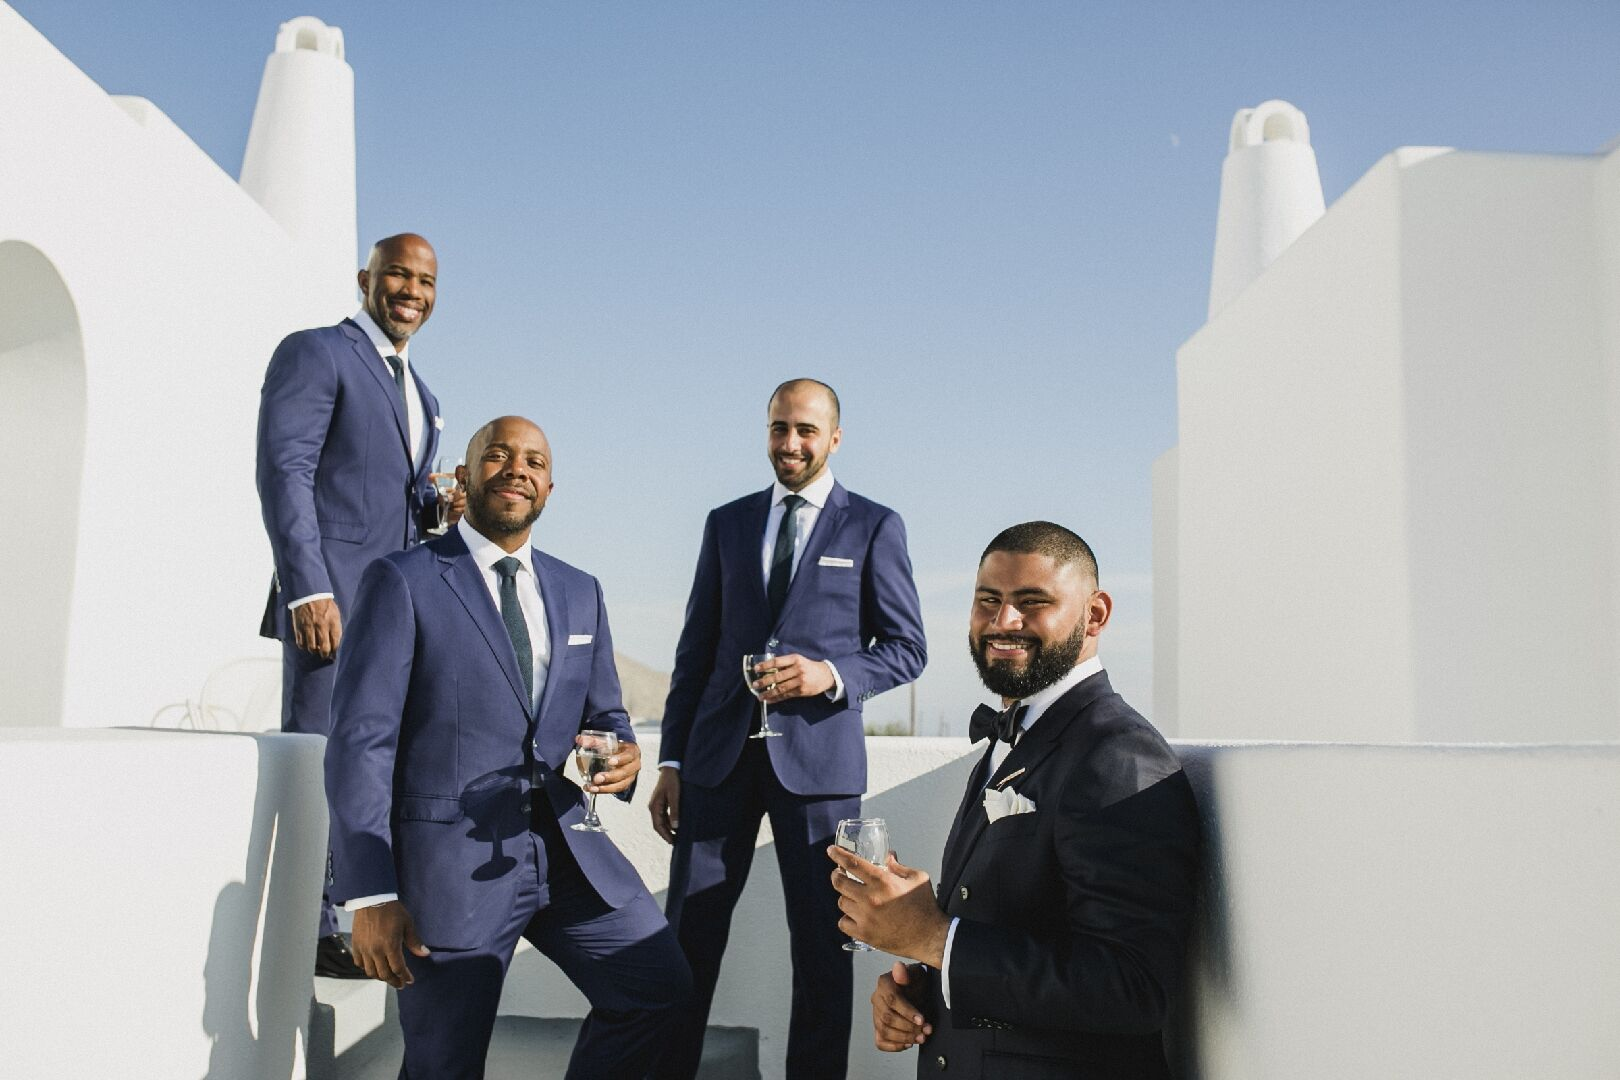 The Groomsman Suit - Chicago, IL